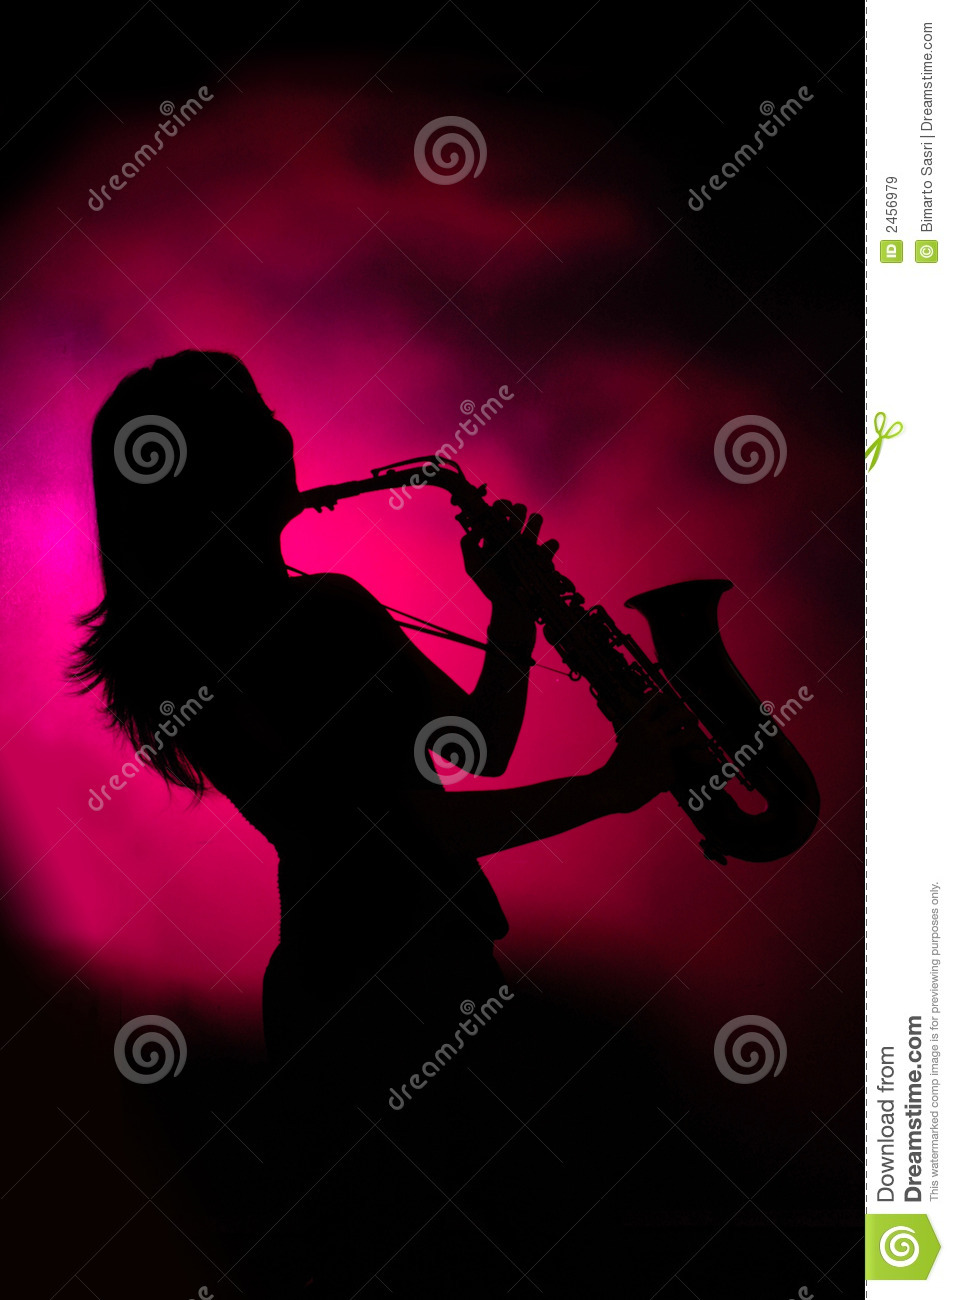 Senhora do jazz